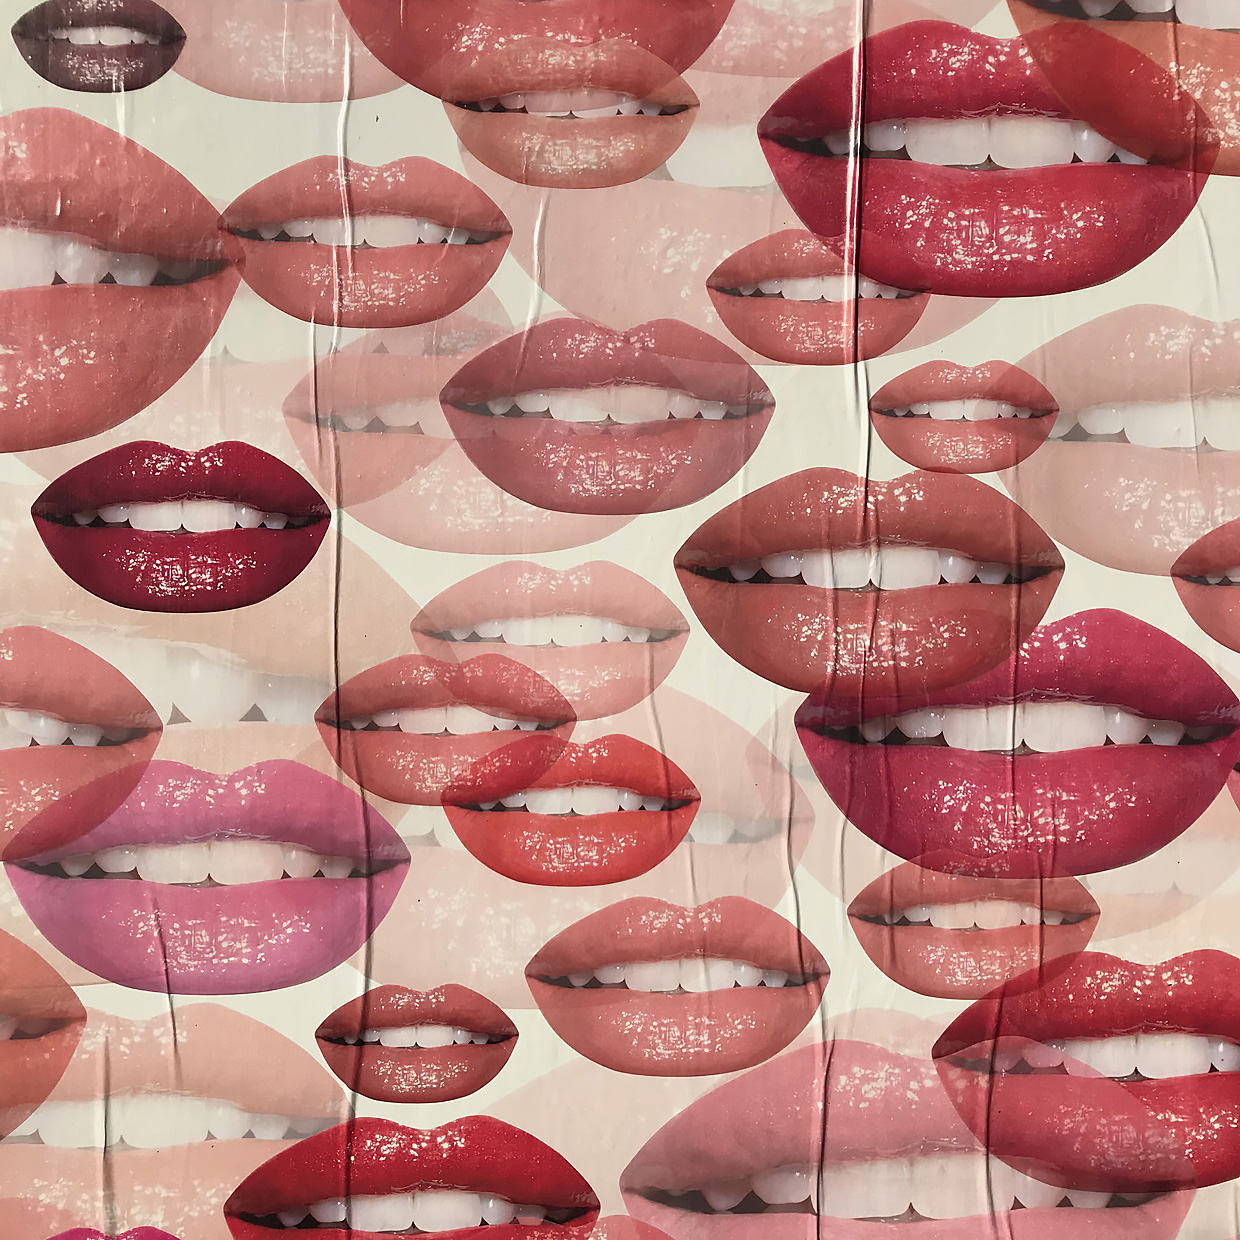 Multiple lips